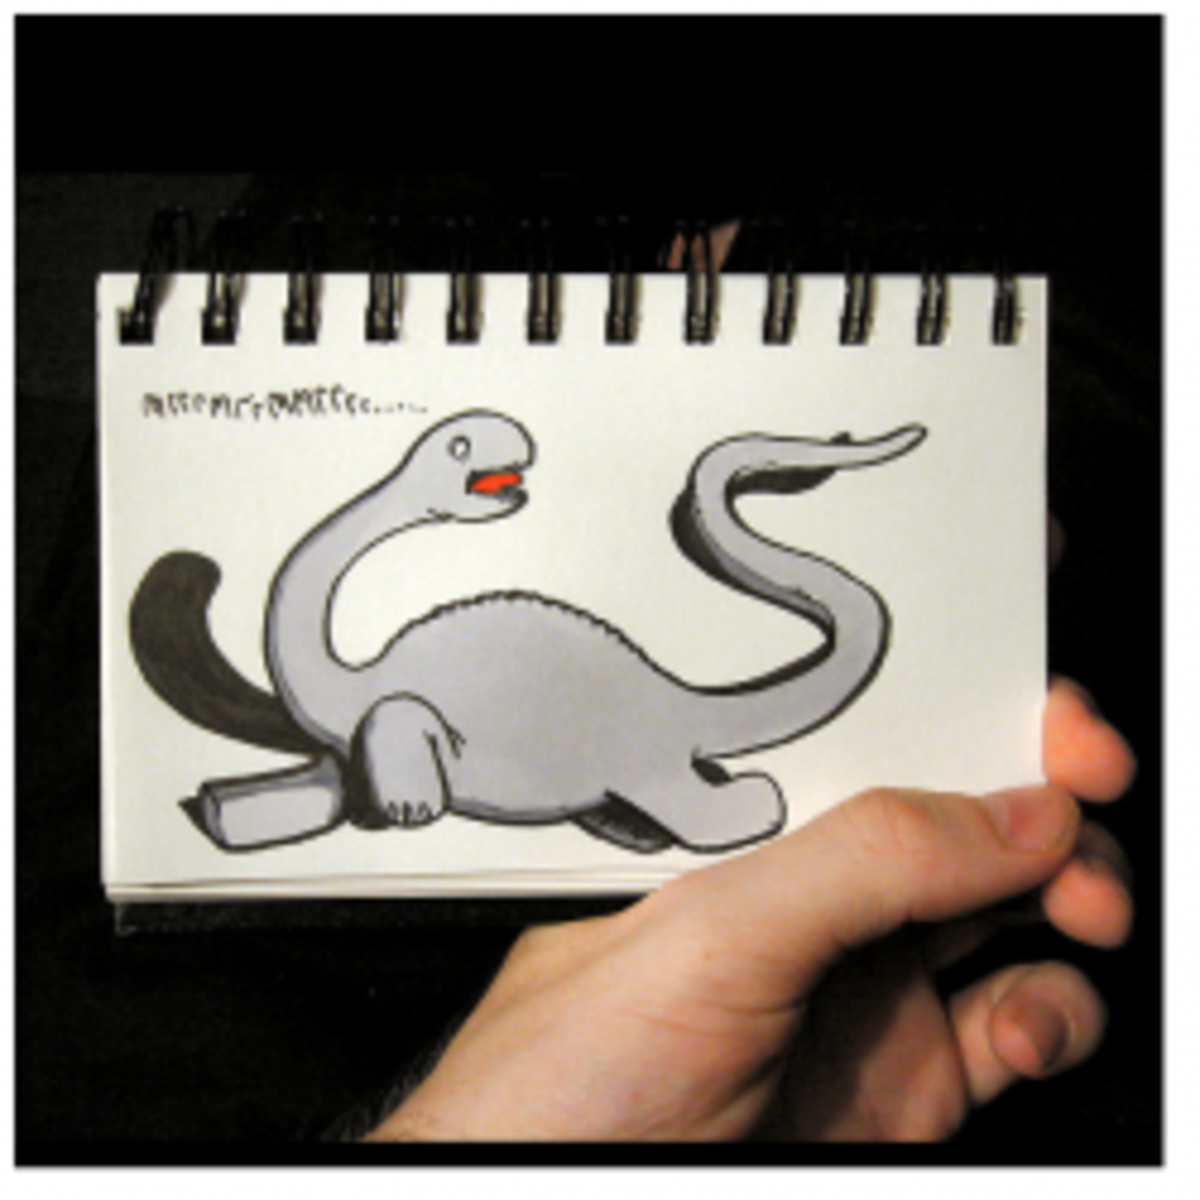 draw-drawing-every-day-creative-hobby-sketchbook-journal